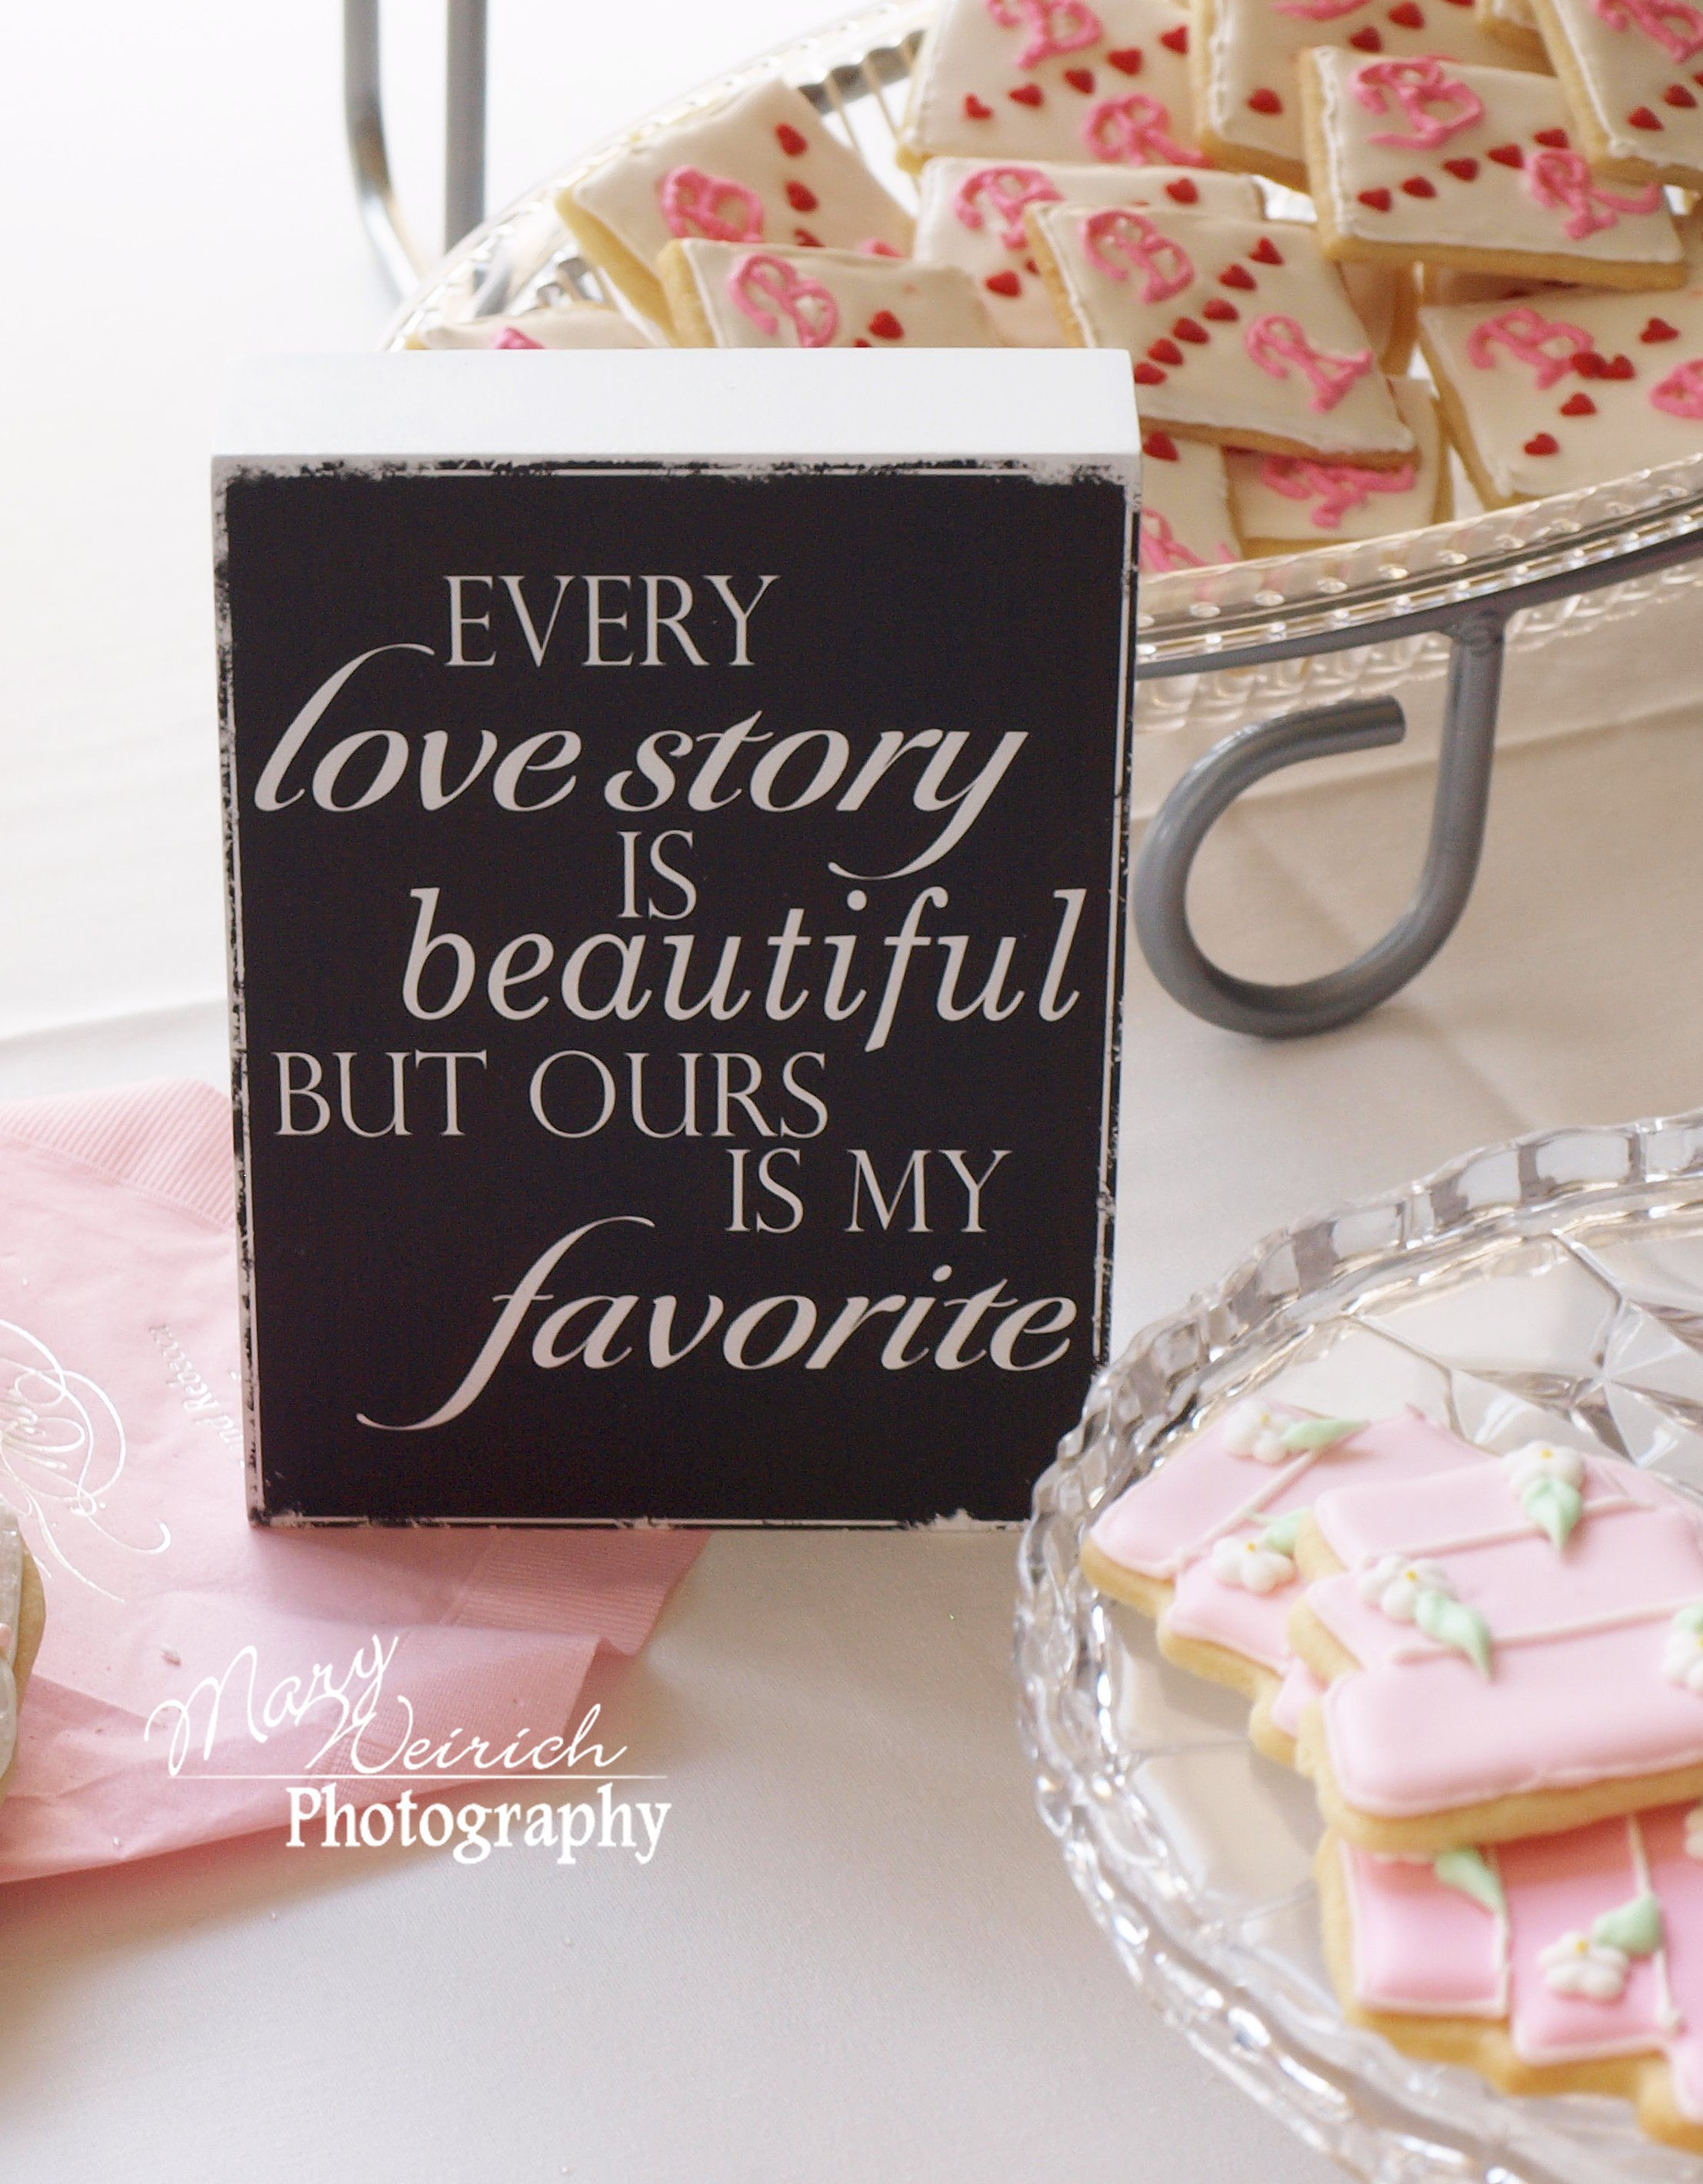 Wedding Photography Table Decoration Idea Wedding Cookies Mary Weirich Photography